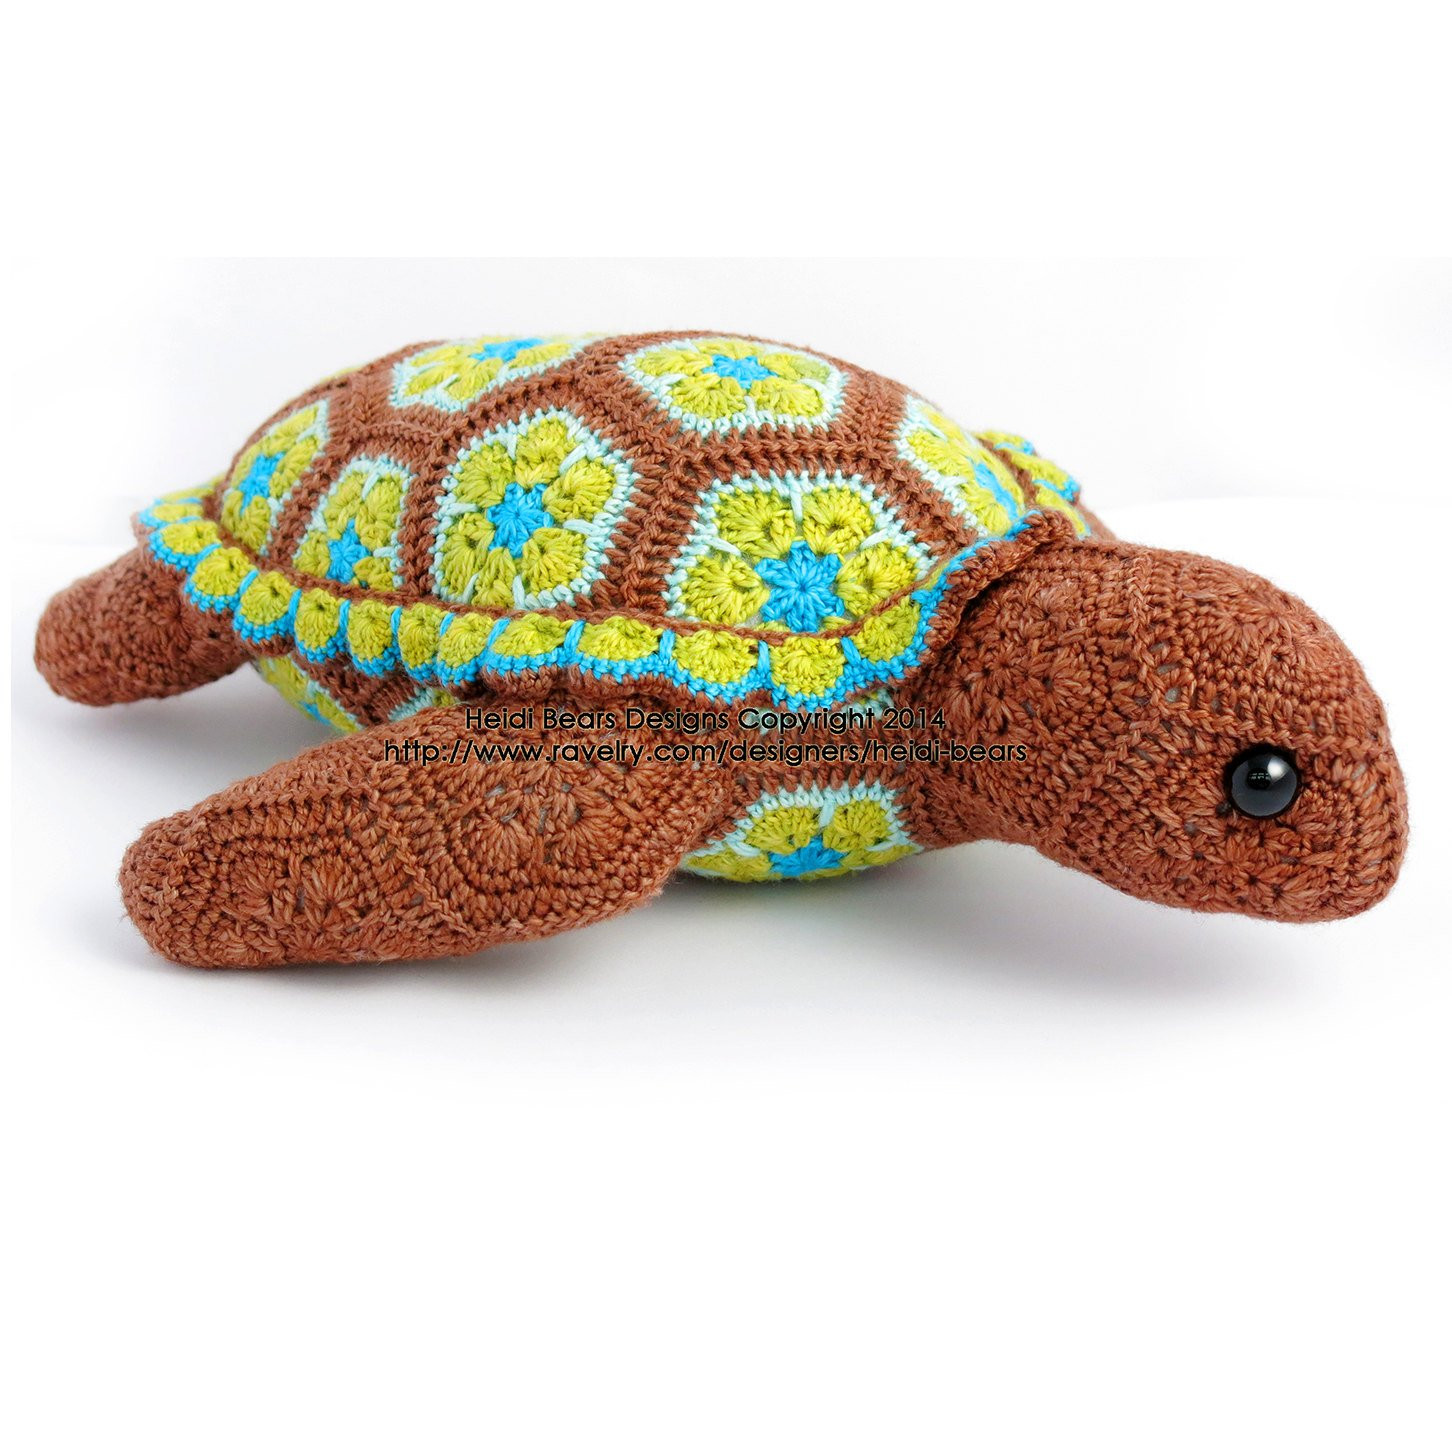 Lovely atuin the Turtle African Flower Crochet Pattern Crochet Turtle Of Innovative 48 Images Crochet Turtle